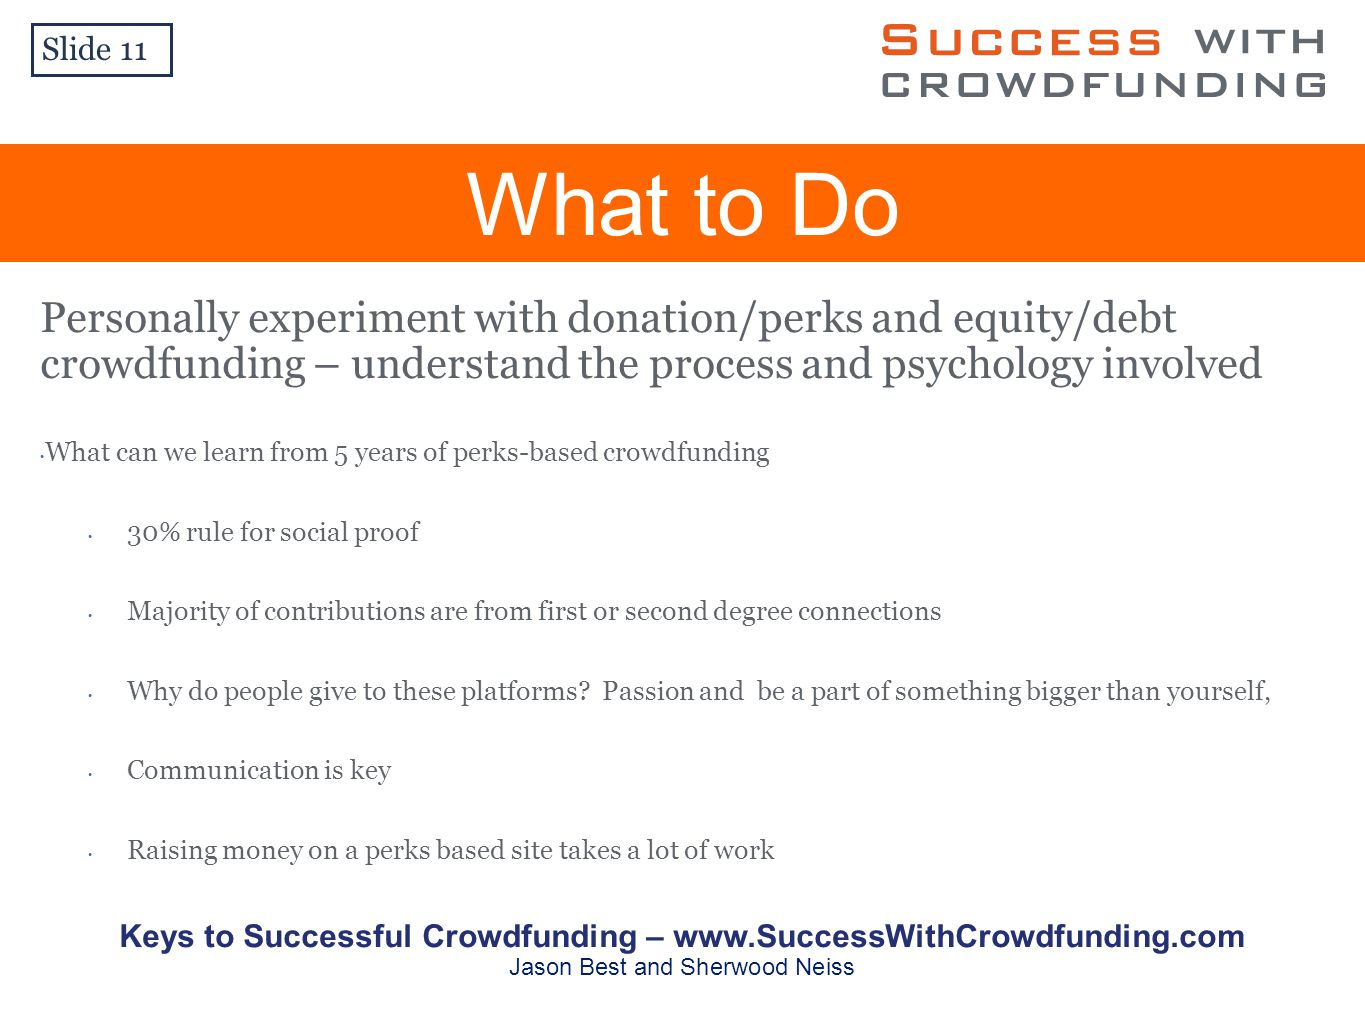 Personally experiment with donation/perks and equity/debt crowdfunding – understand the process and psychology involved What can we learn from 5 years